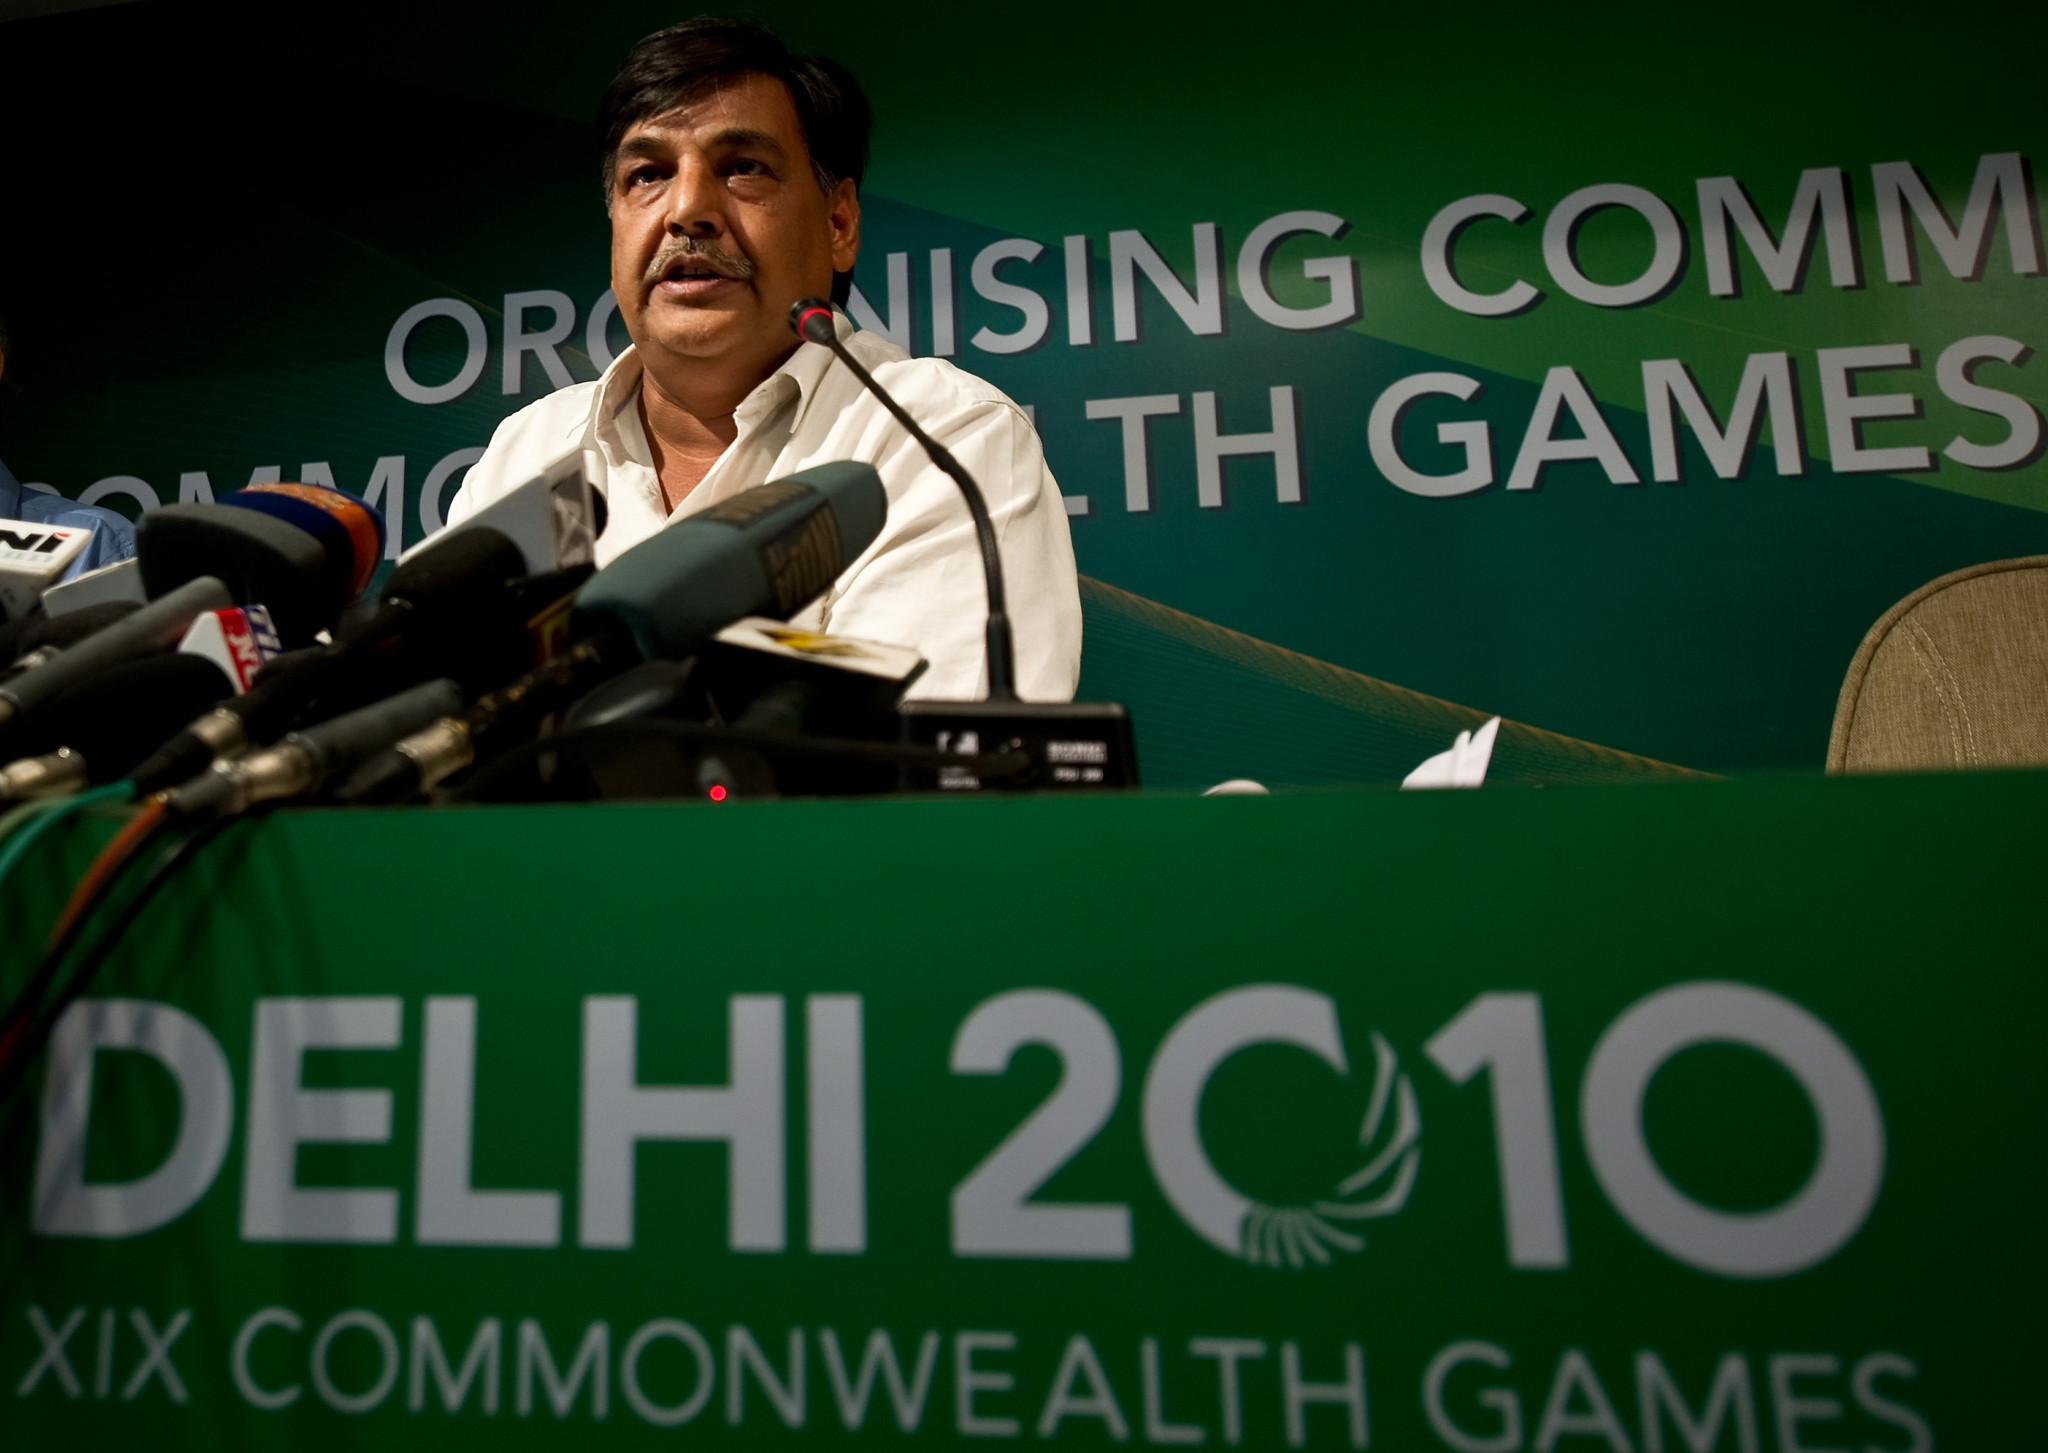 Former Delhi 2010 secretary general Lalit Bhanot reportedly faces further charges related to the Games ©Getty Images